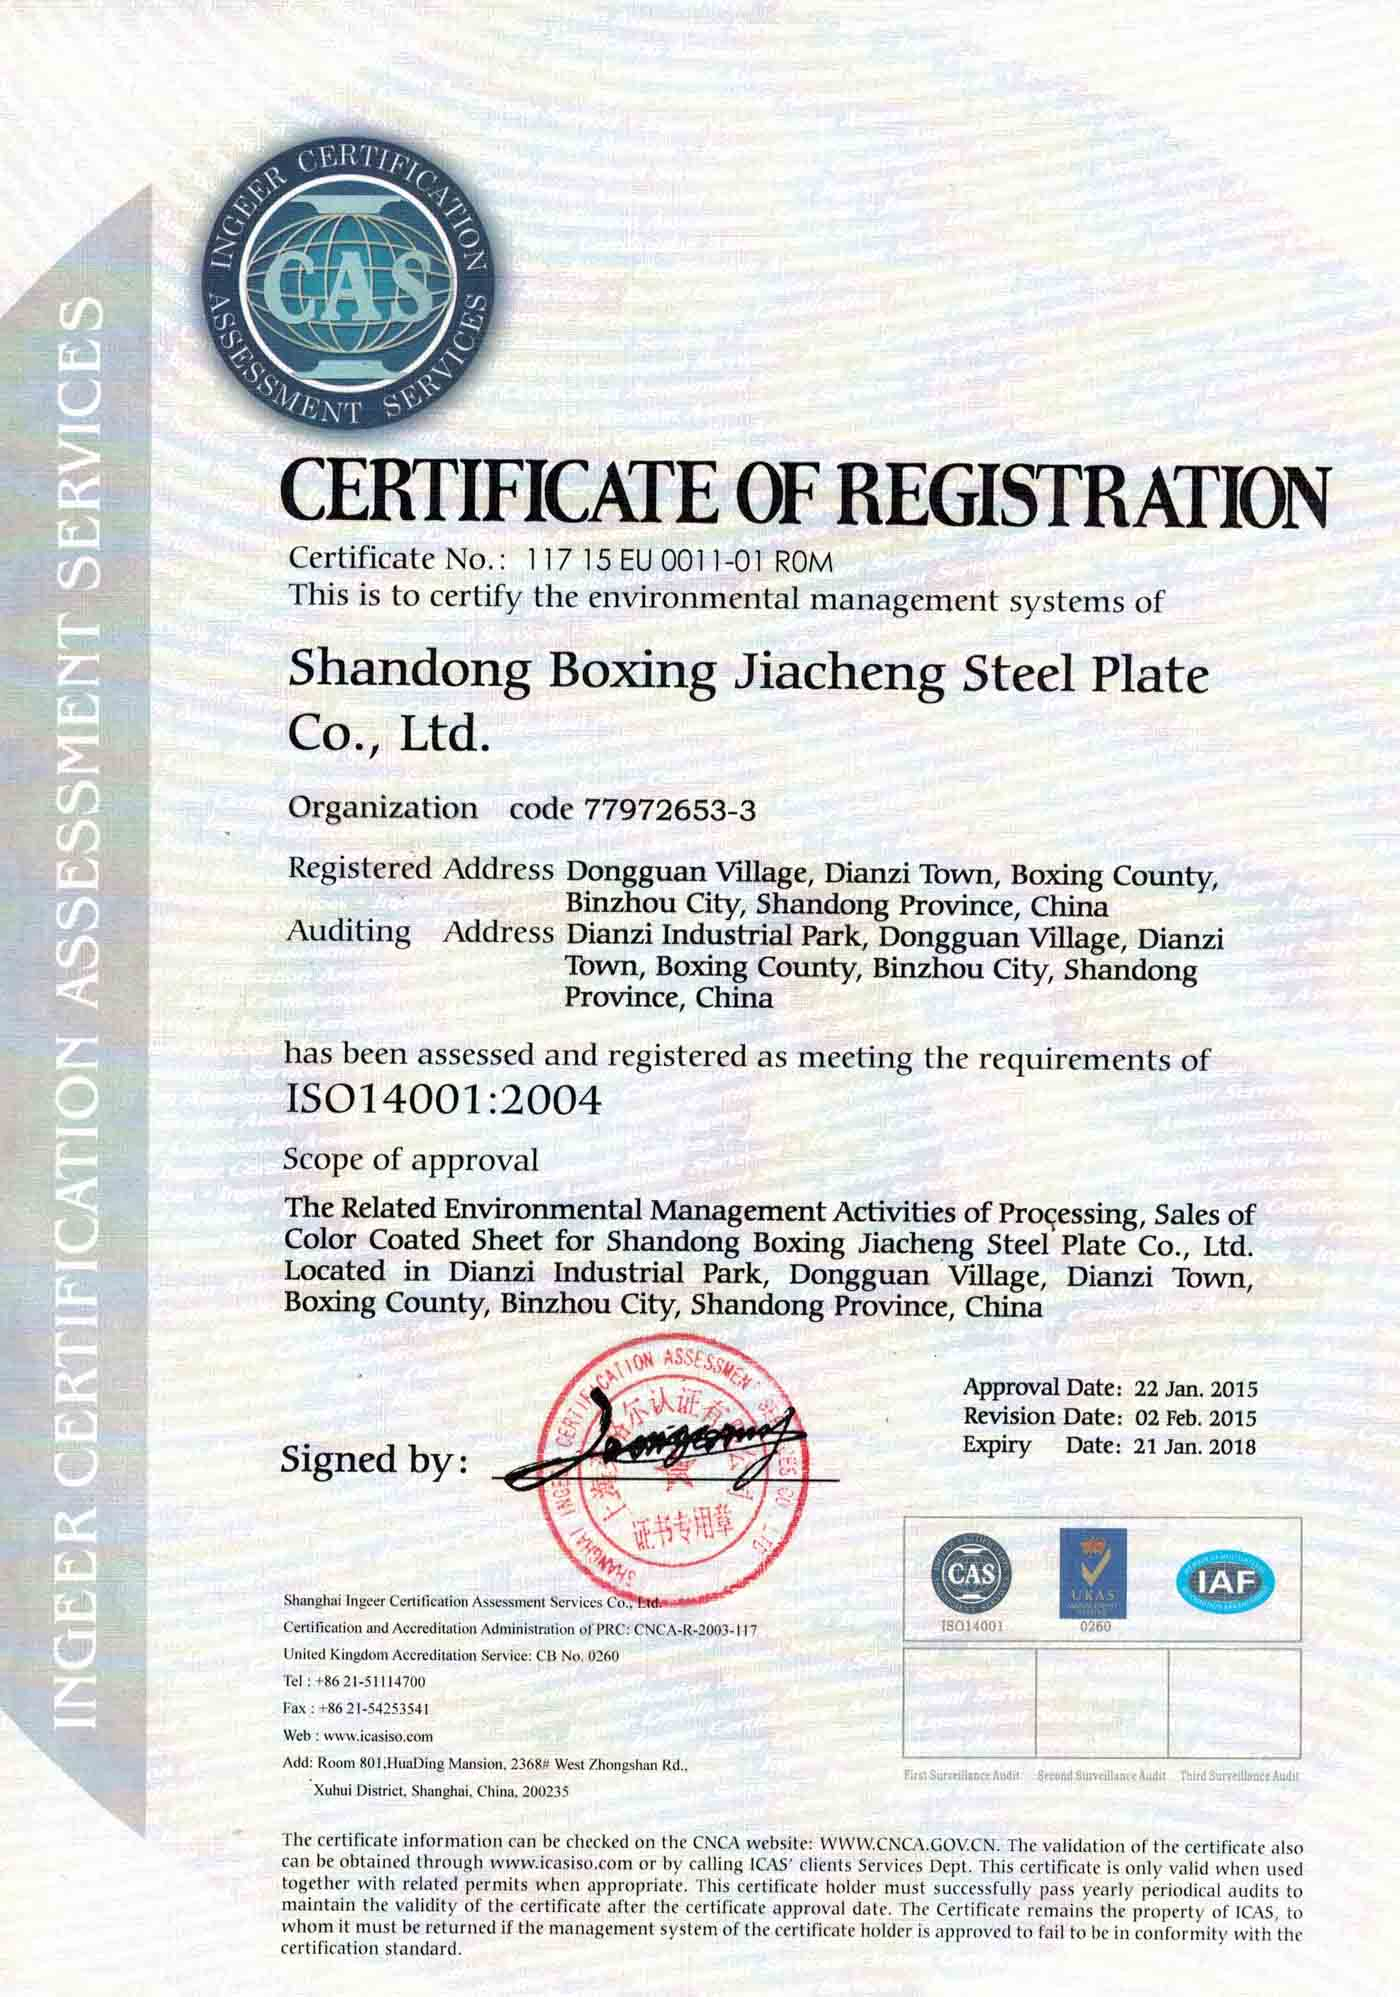 ISO14001:2004 Certificate of Registration (English Version)